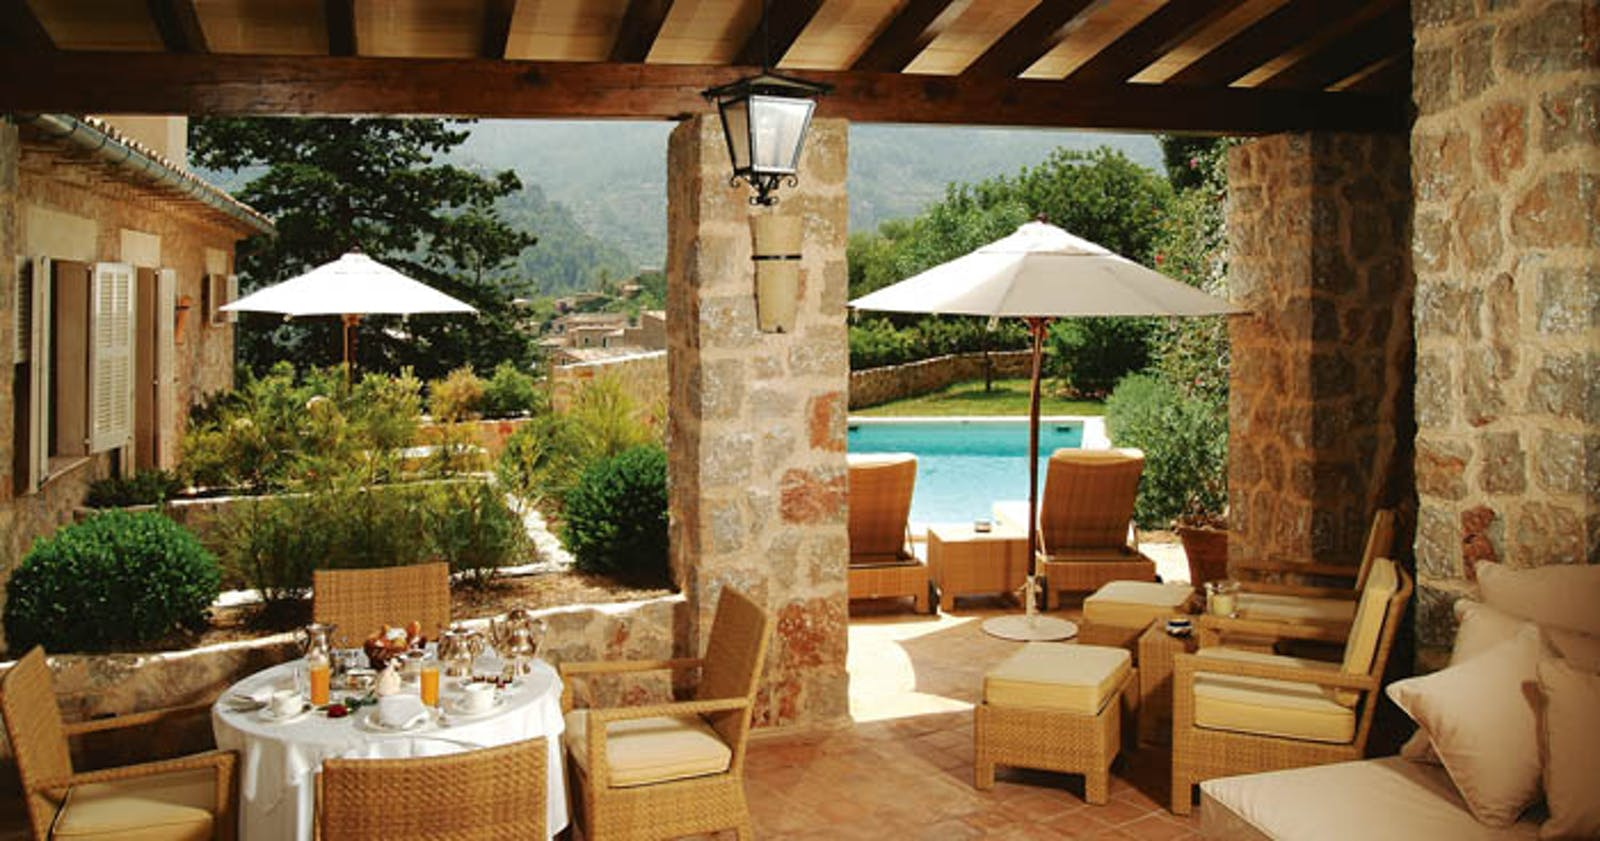 Private Terrace at La Residencia, A Belmond Hotel, Mallorca